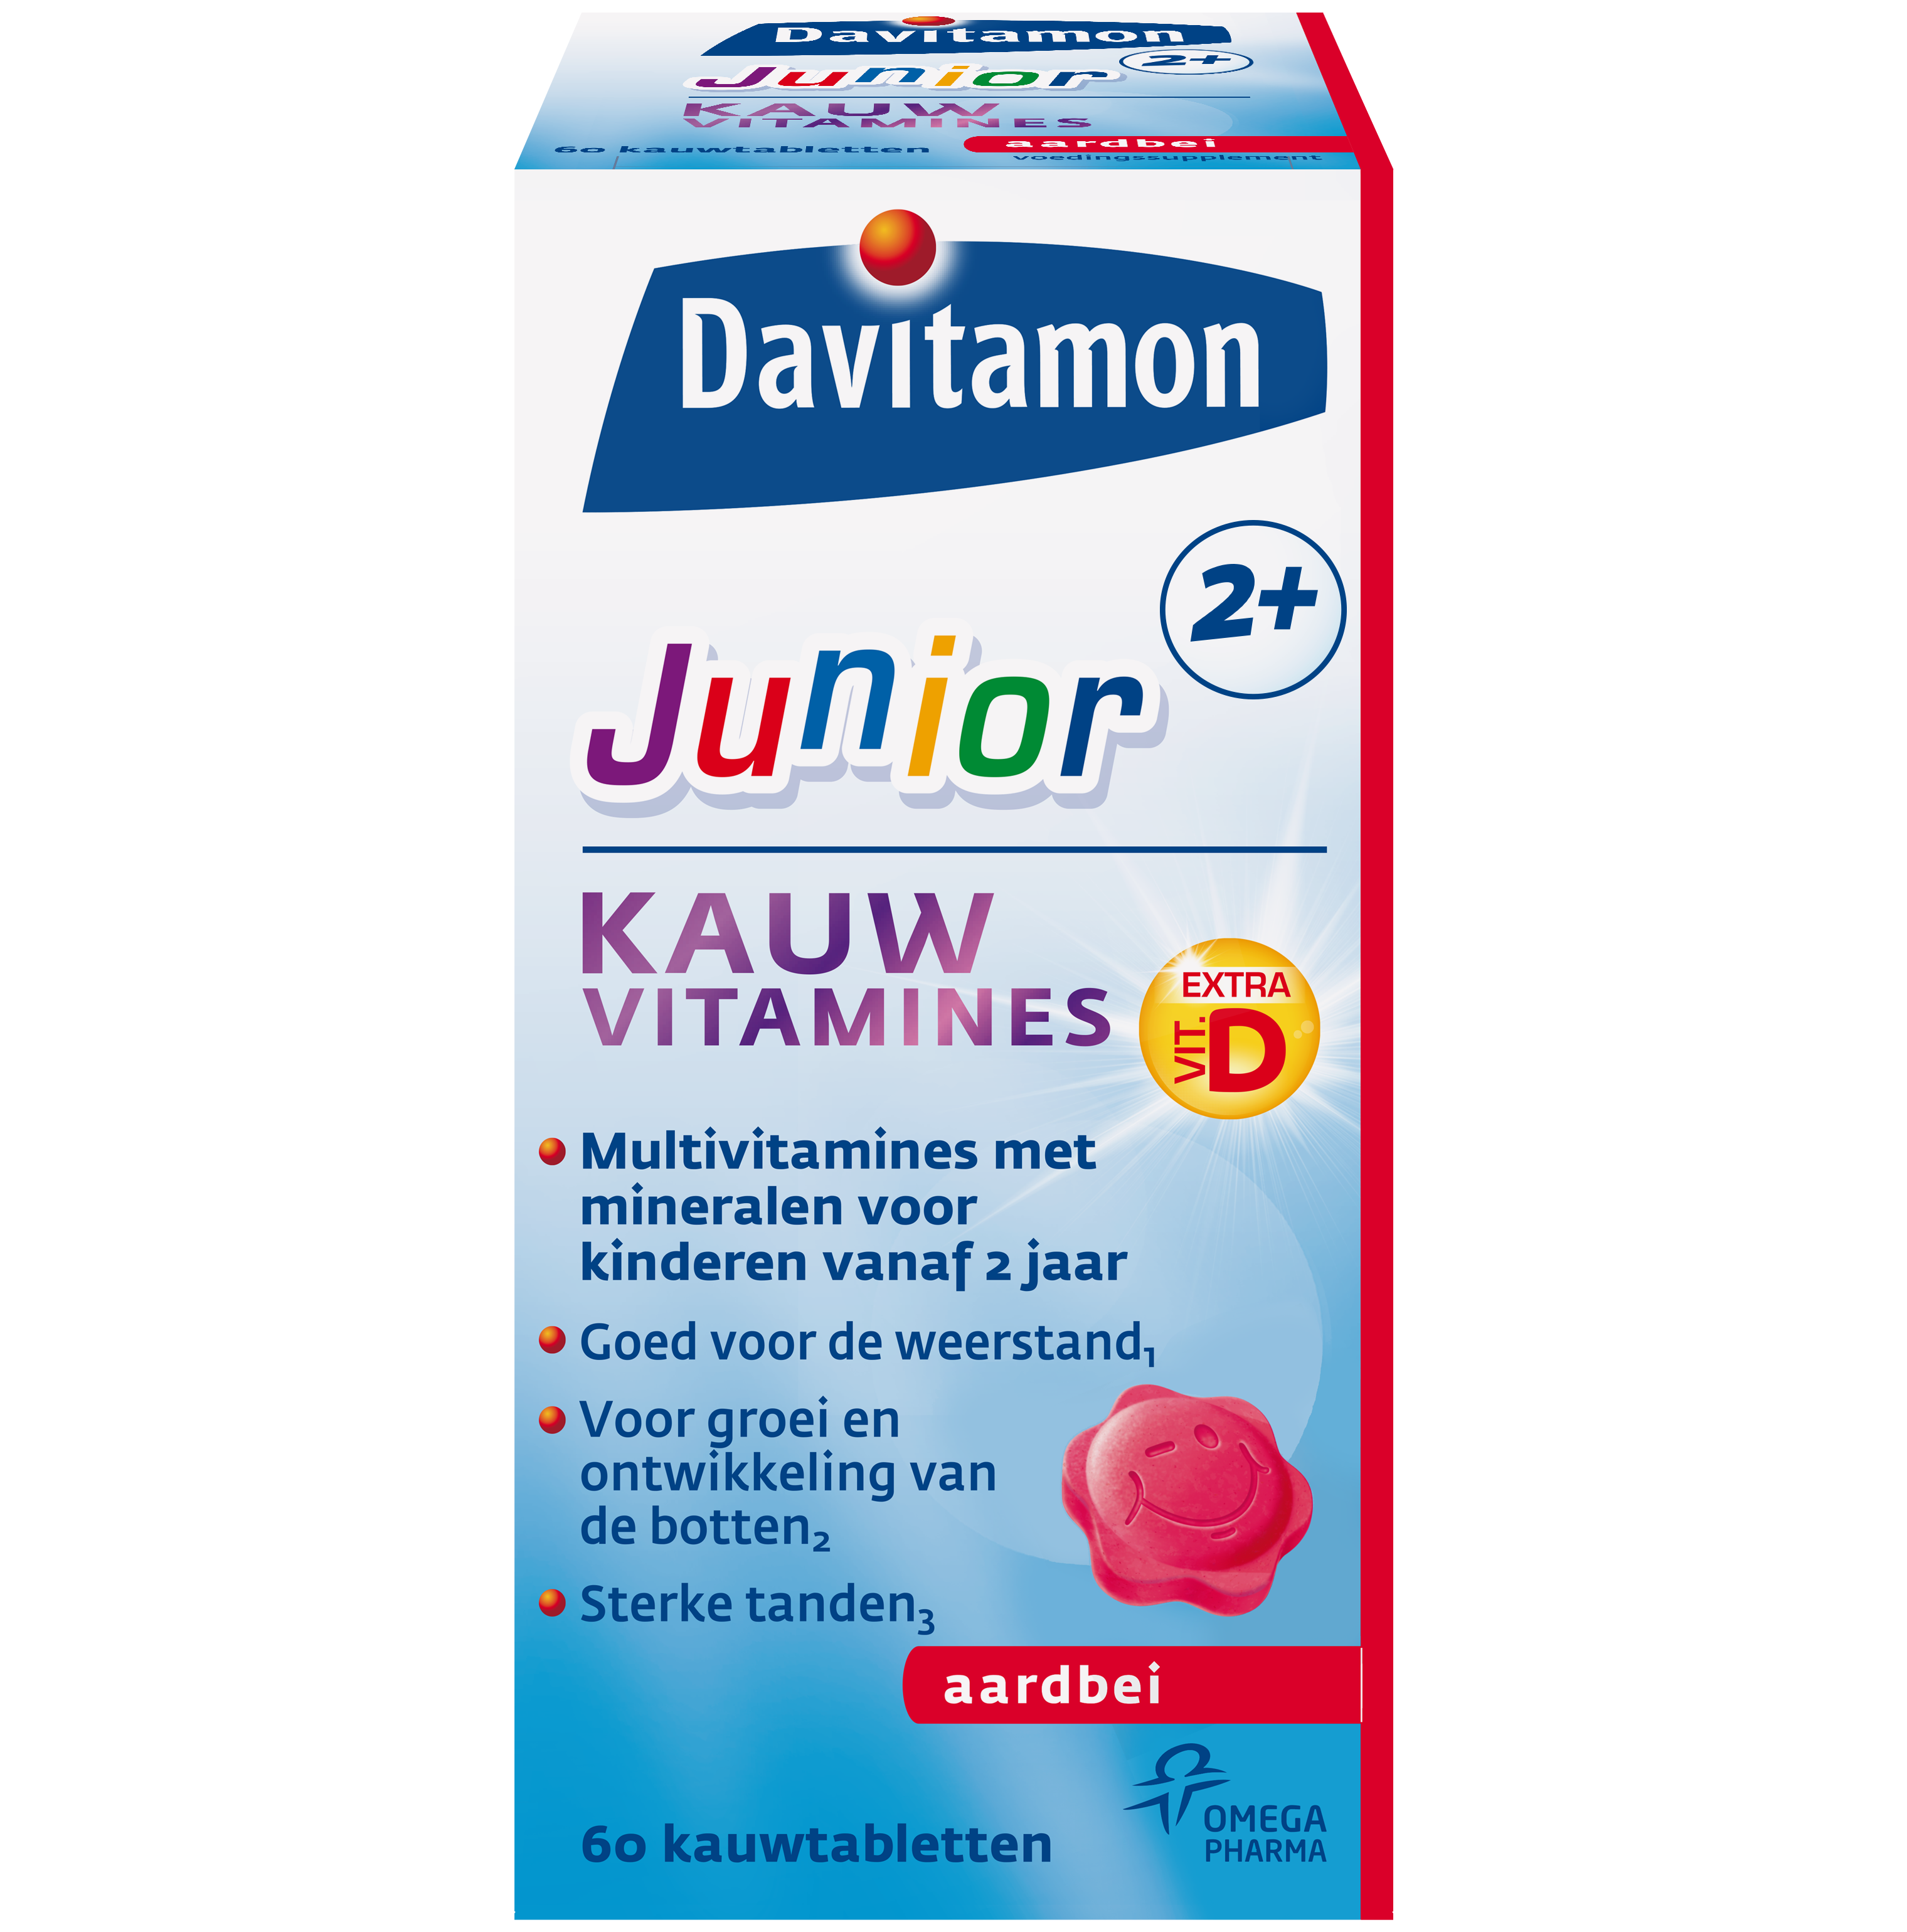 Davitamon Junior 2+ Aardbei &#8211; <br>60 kauwvitamines